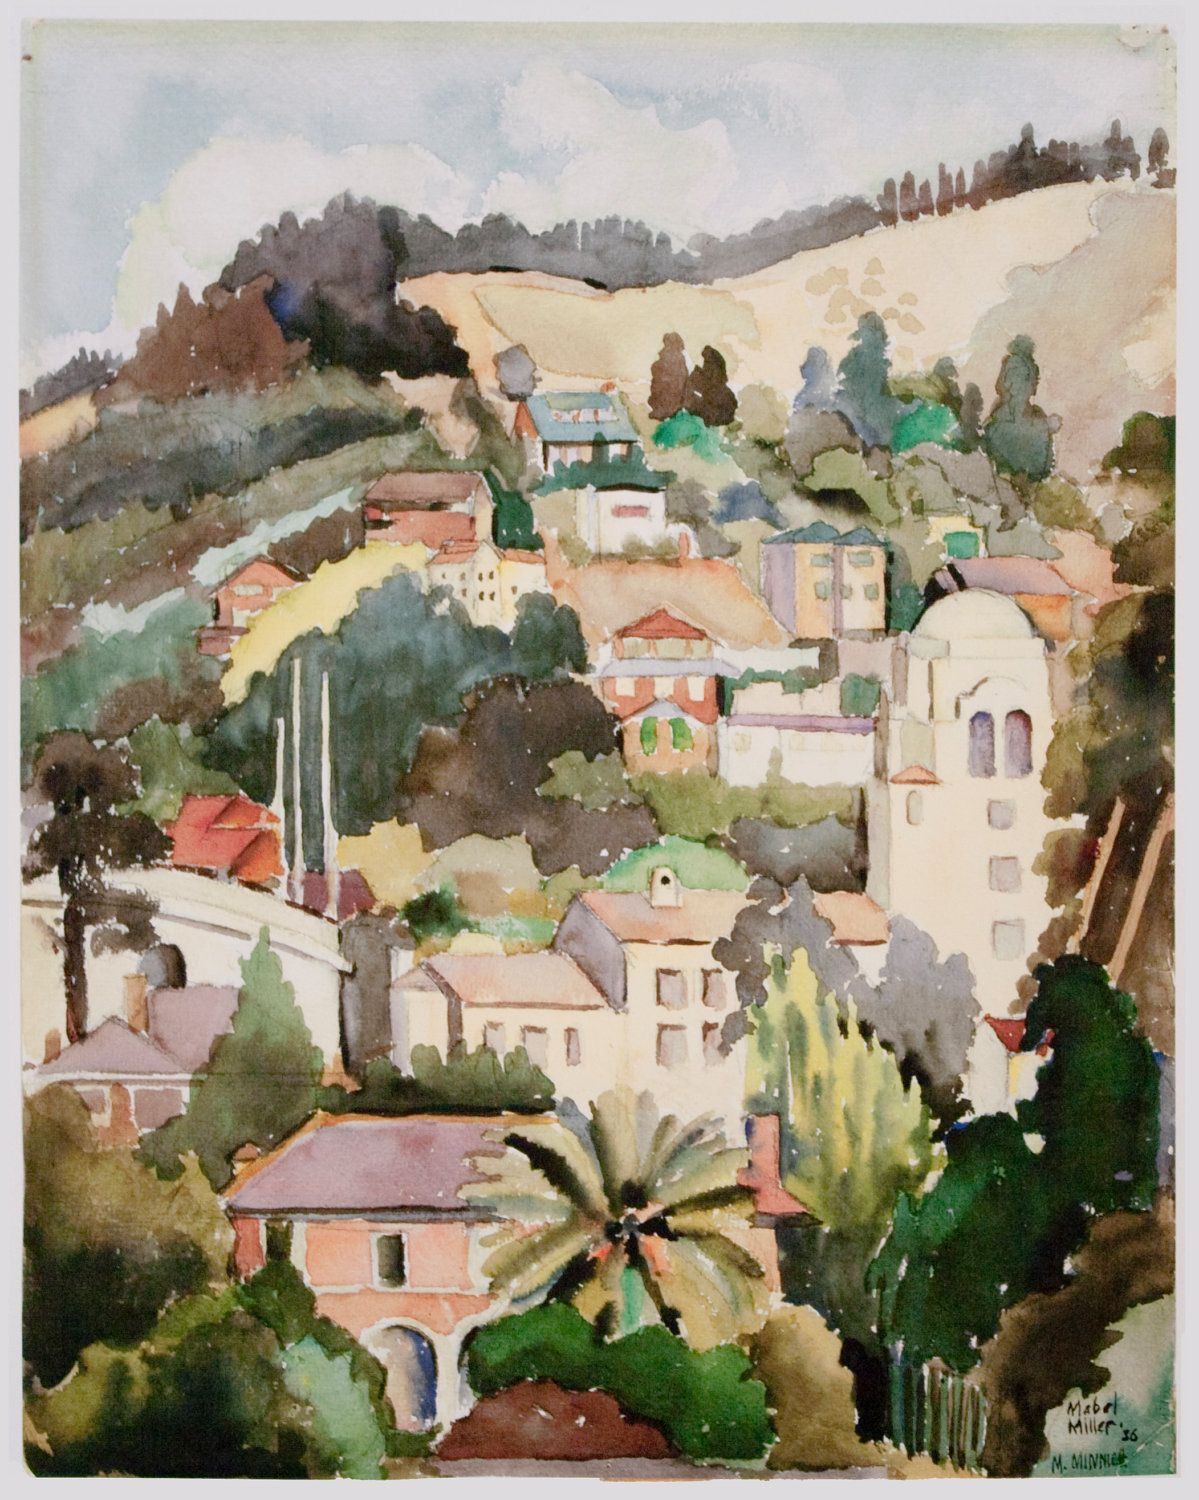 UC BERKELEY HILLS in 1936 Watercolor Painting | Acuarela y Arquitectura